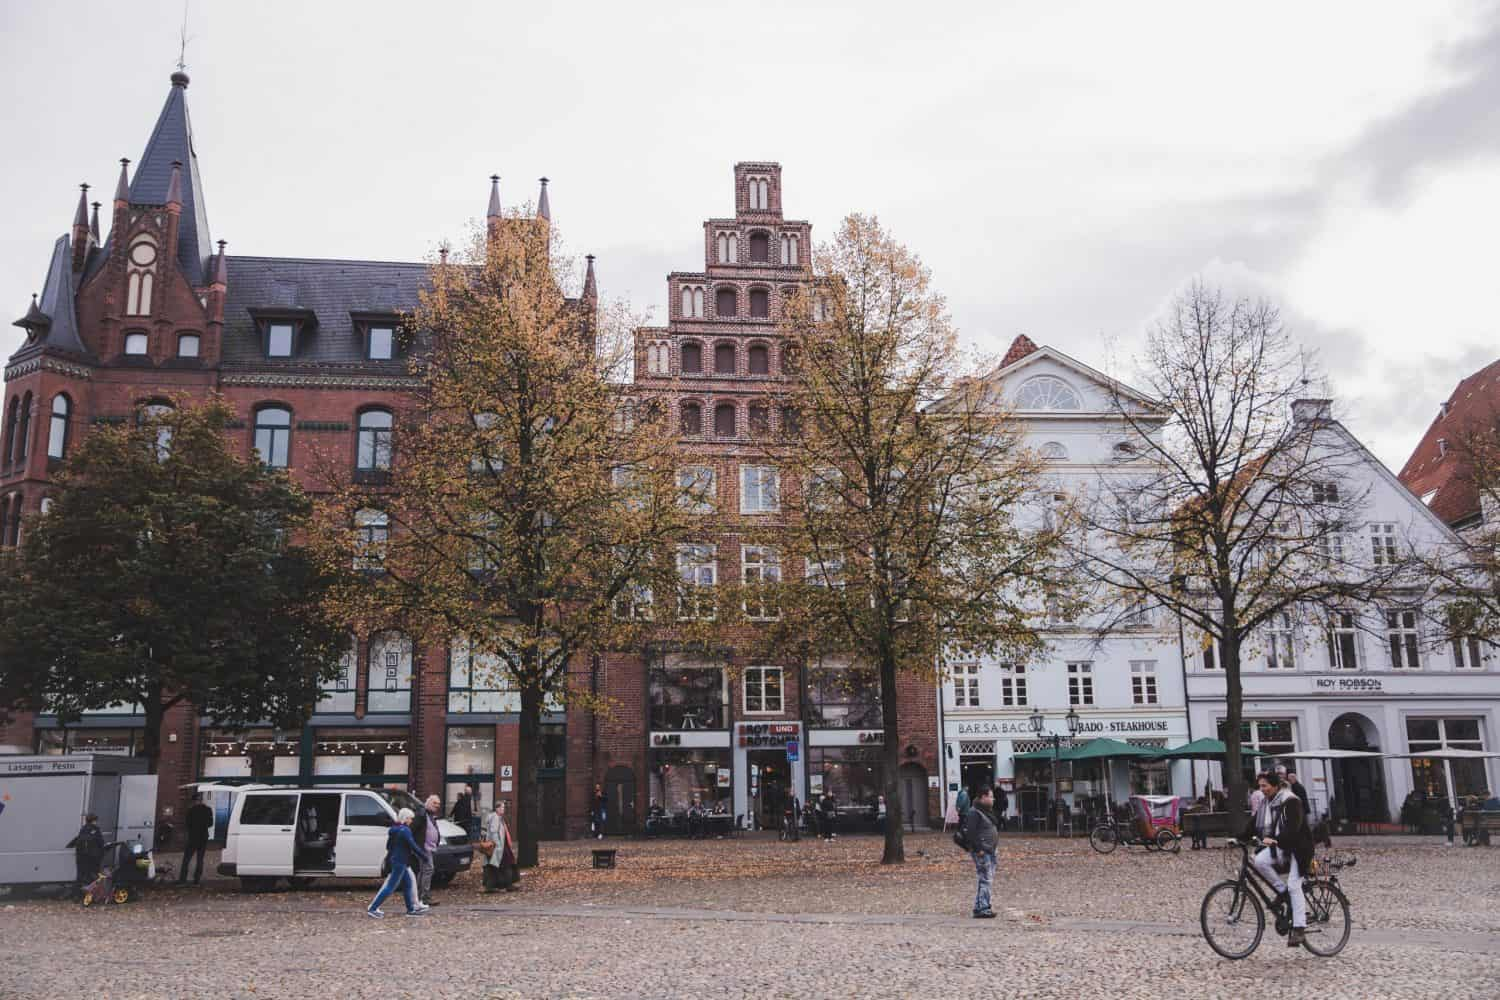 Looking for day trips from Hamburg? Lüneburg is a great town located only 45 minutes away by train.The Lüneburg main square, pictured here, is lined with pretty brick buildings and a great place for shopping and walking around.